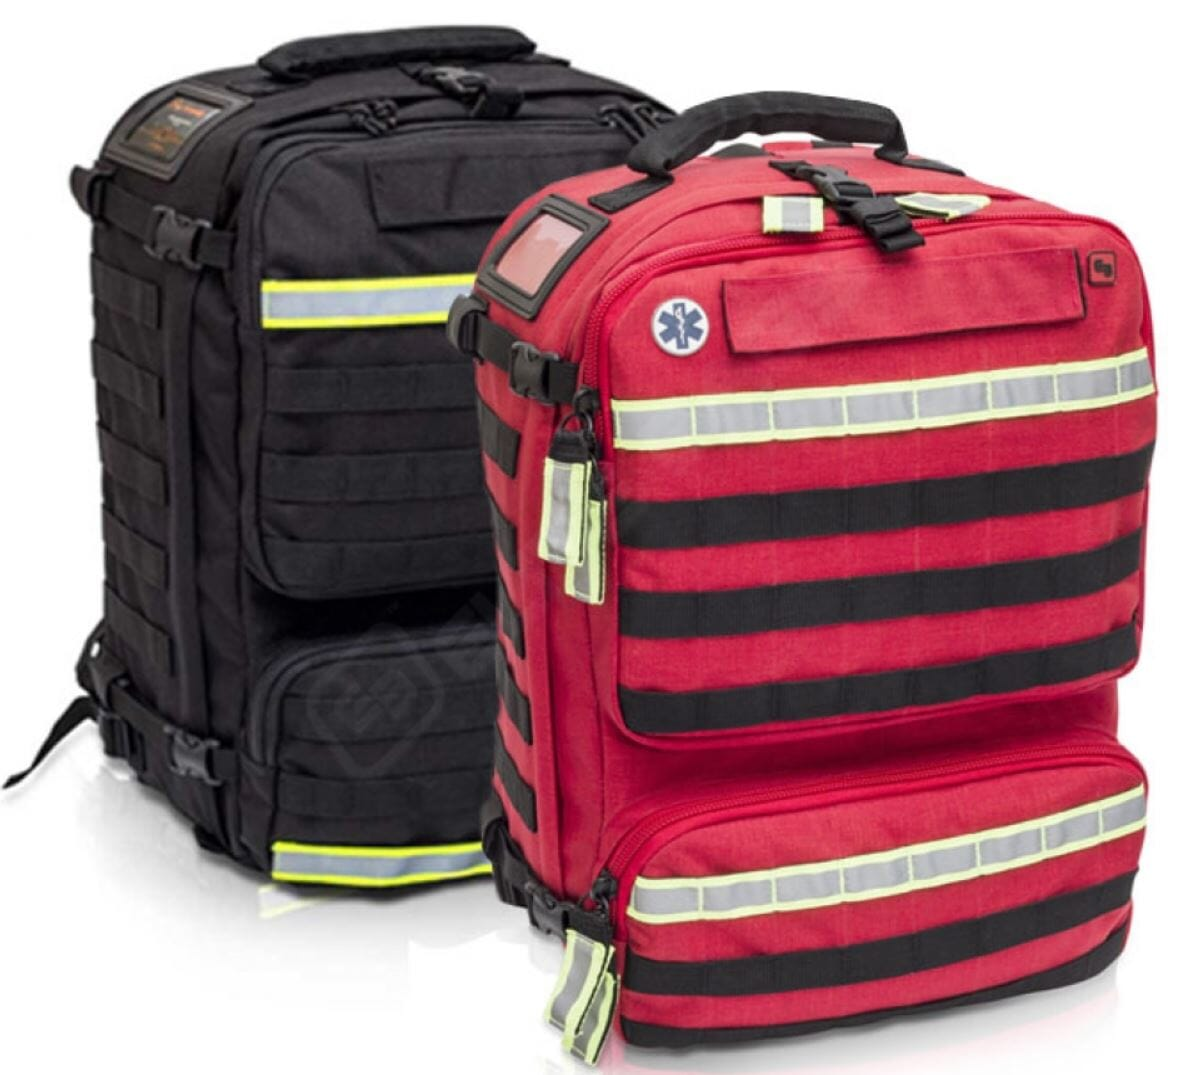 Paramed's XL rednings ryggsekk Paramedic Gymo AS